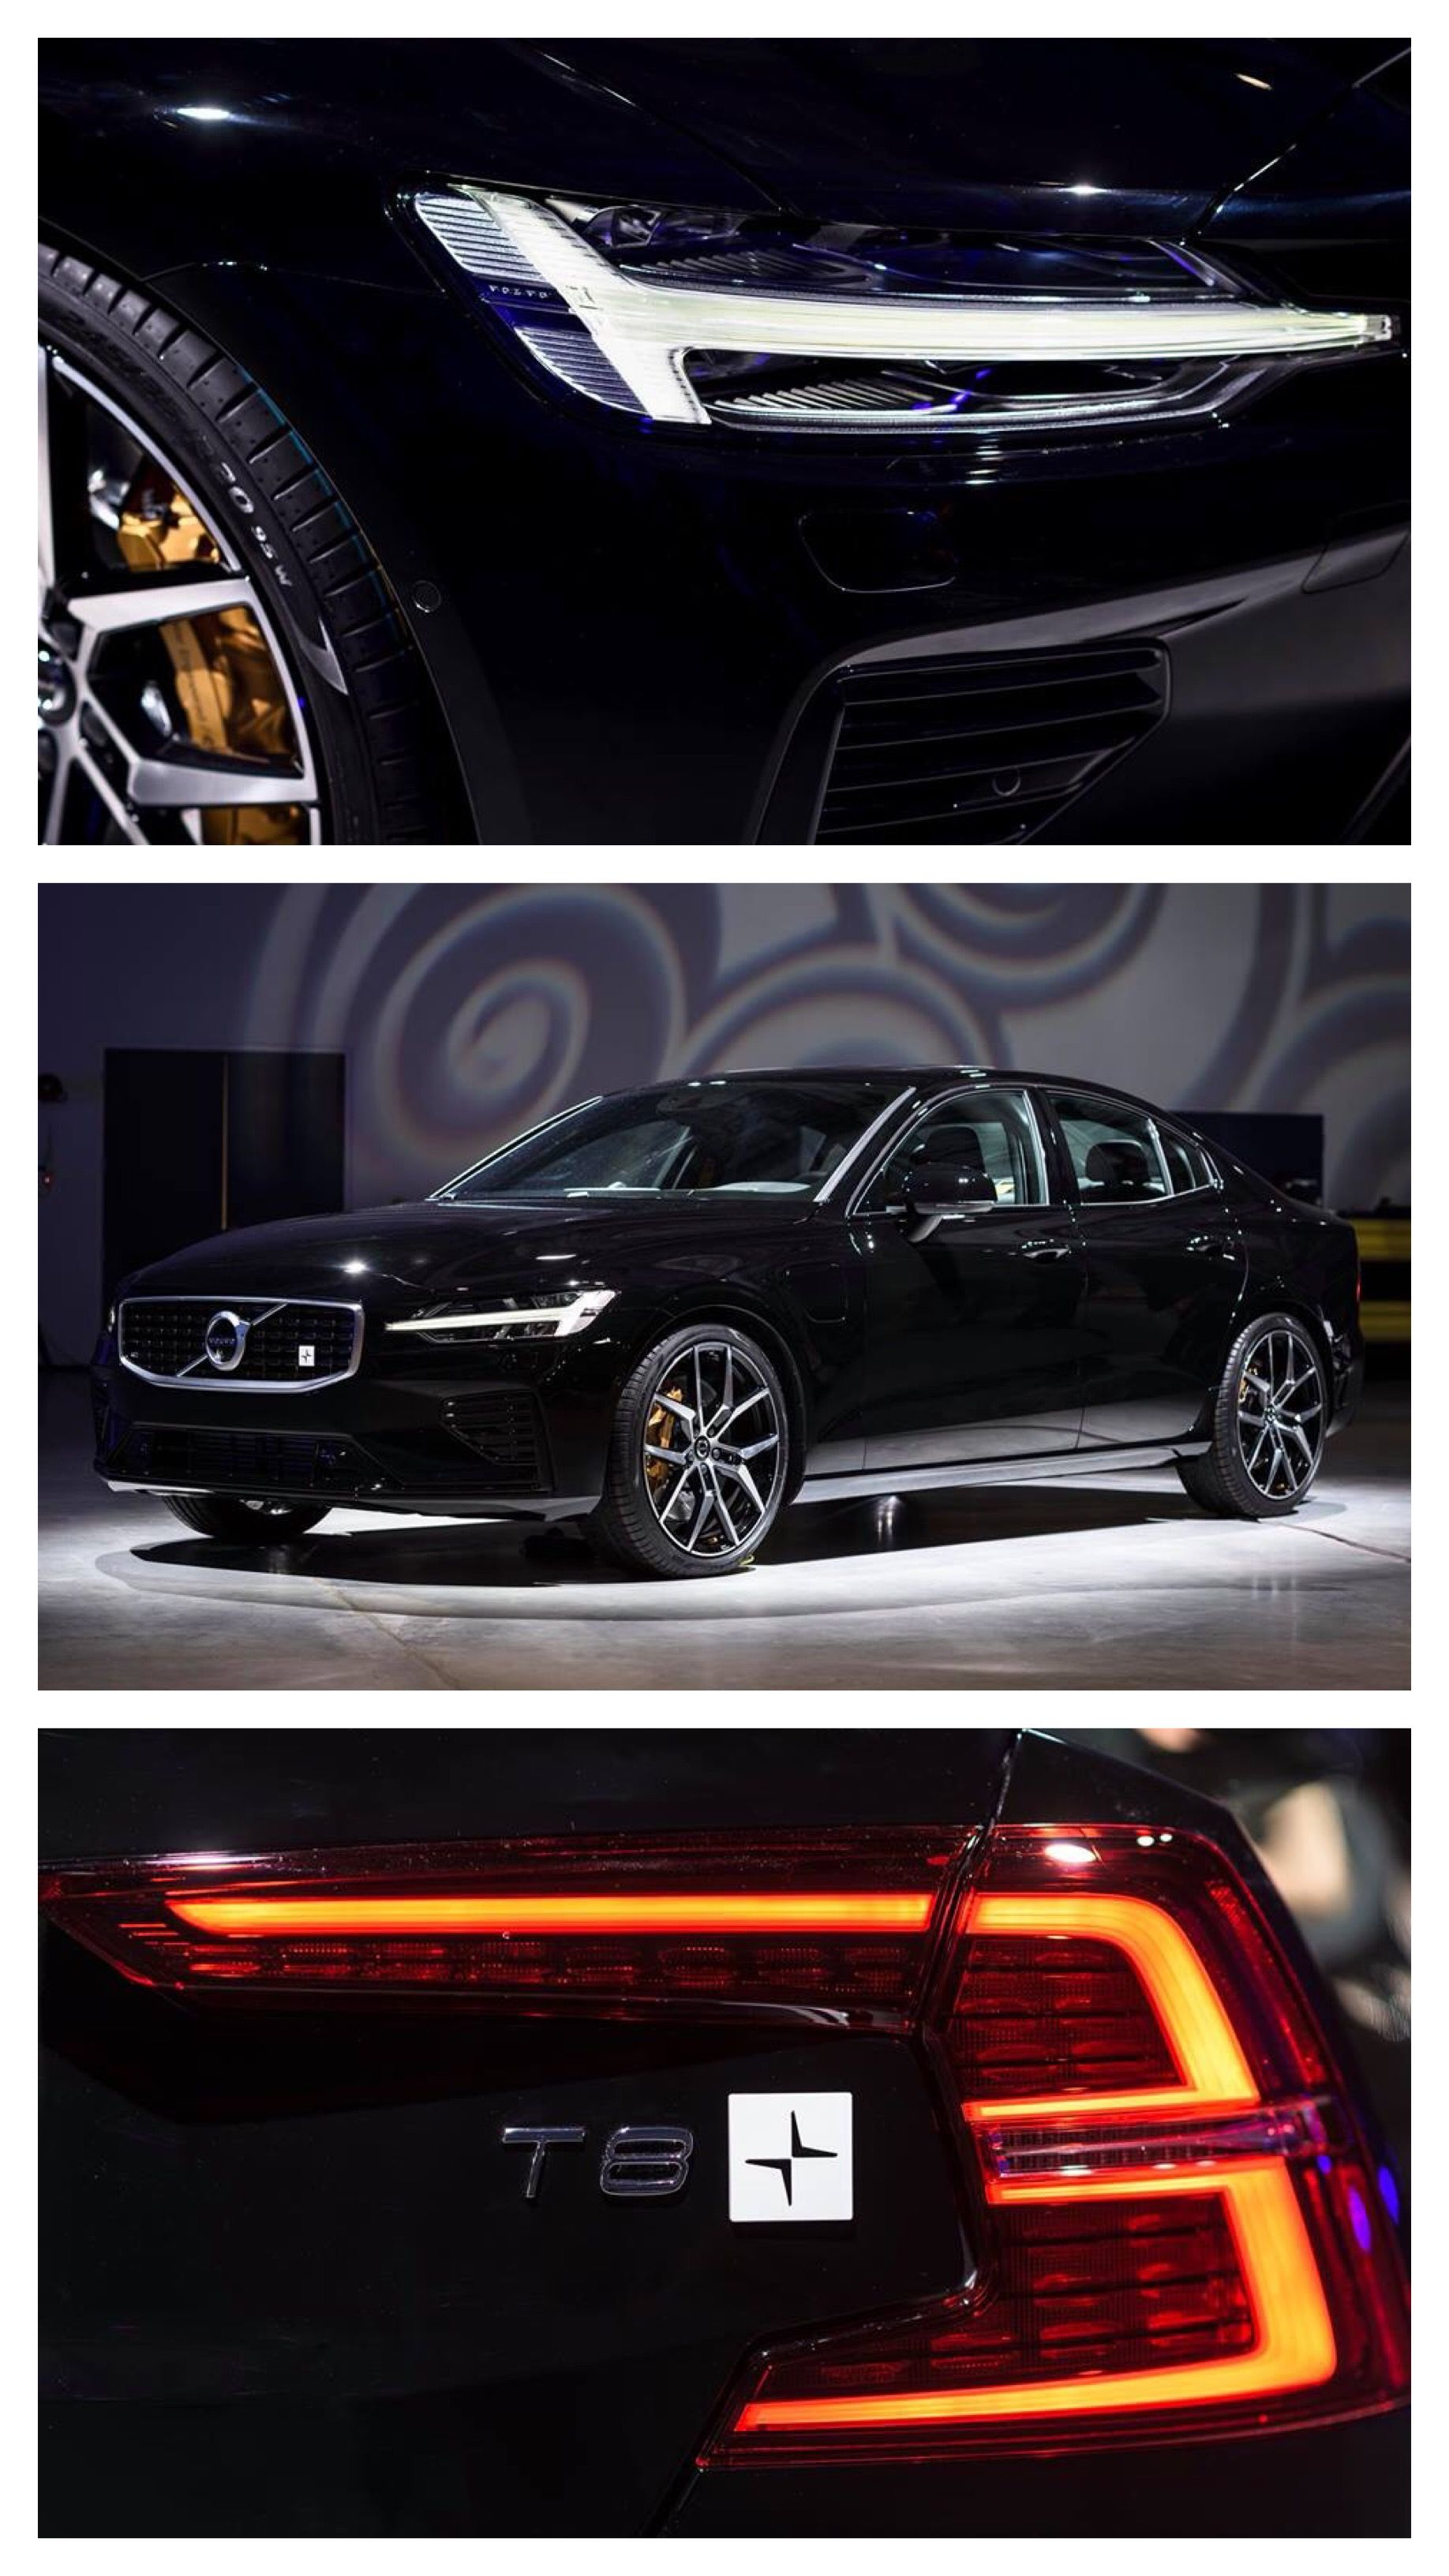 2019 S60 T8 Polestar Engineered Hybrid Luxury Sedan Volvo Car Usa